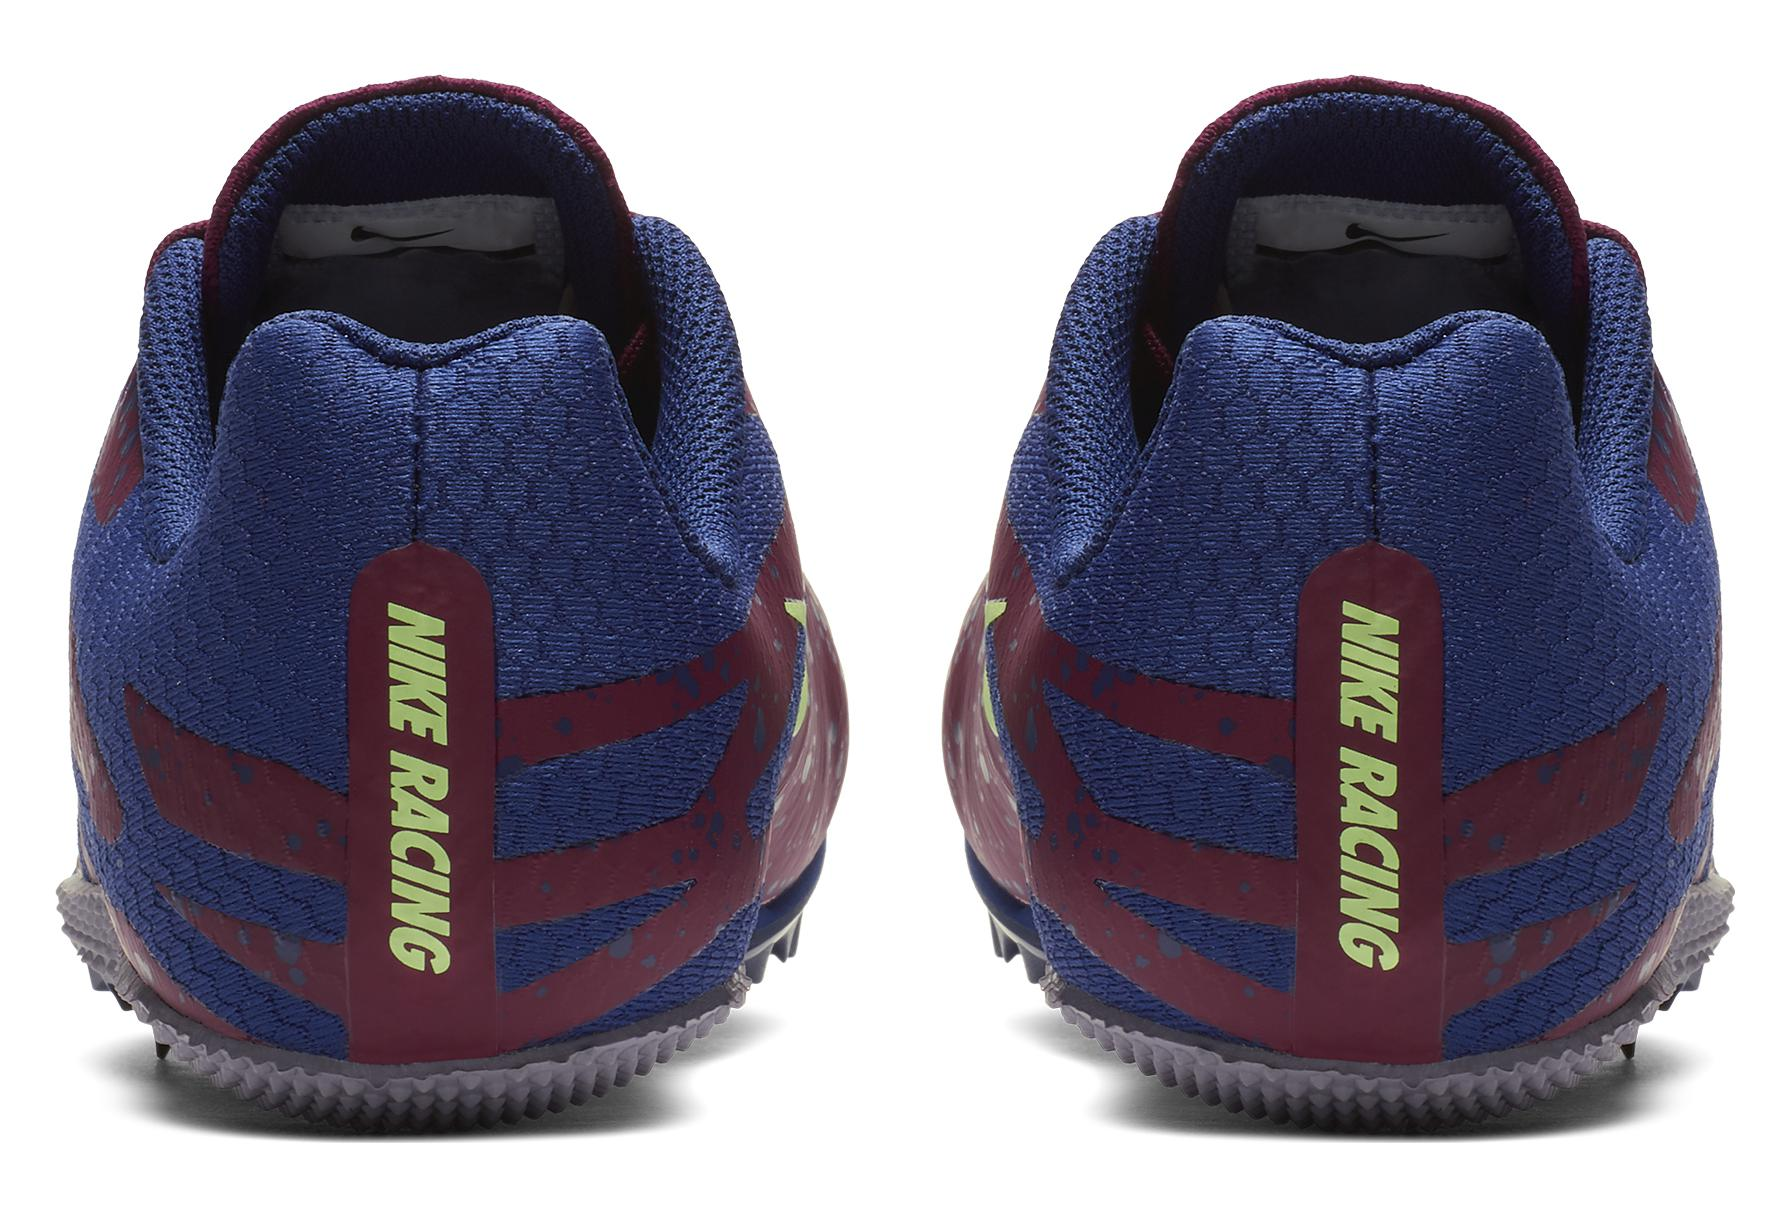 huge selection of 72cda 38f3d Chaussures d Athlétisme Nike Zoom Rival S 9 Rouge   Bleu